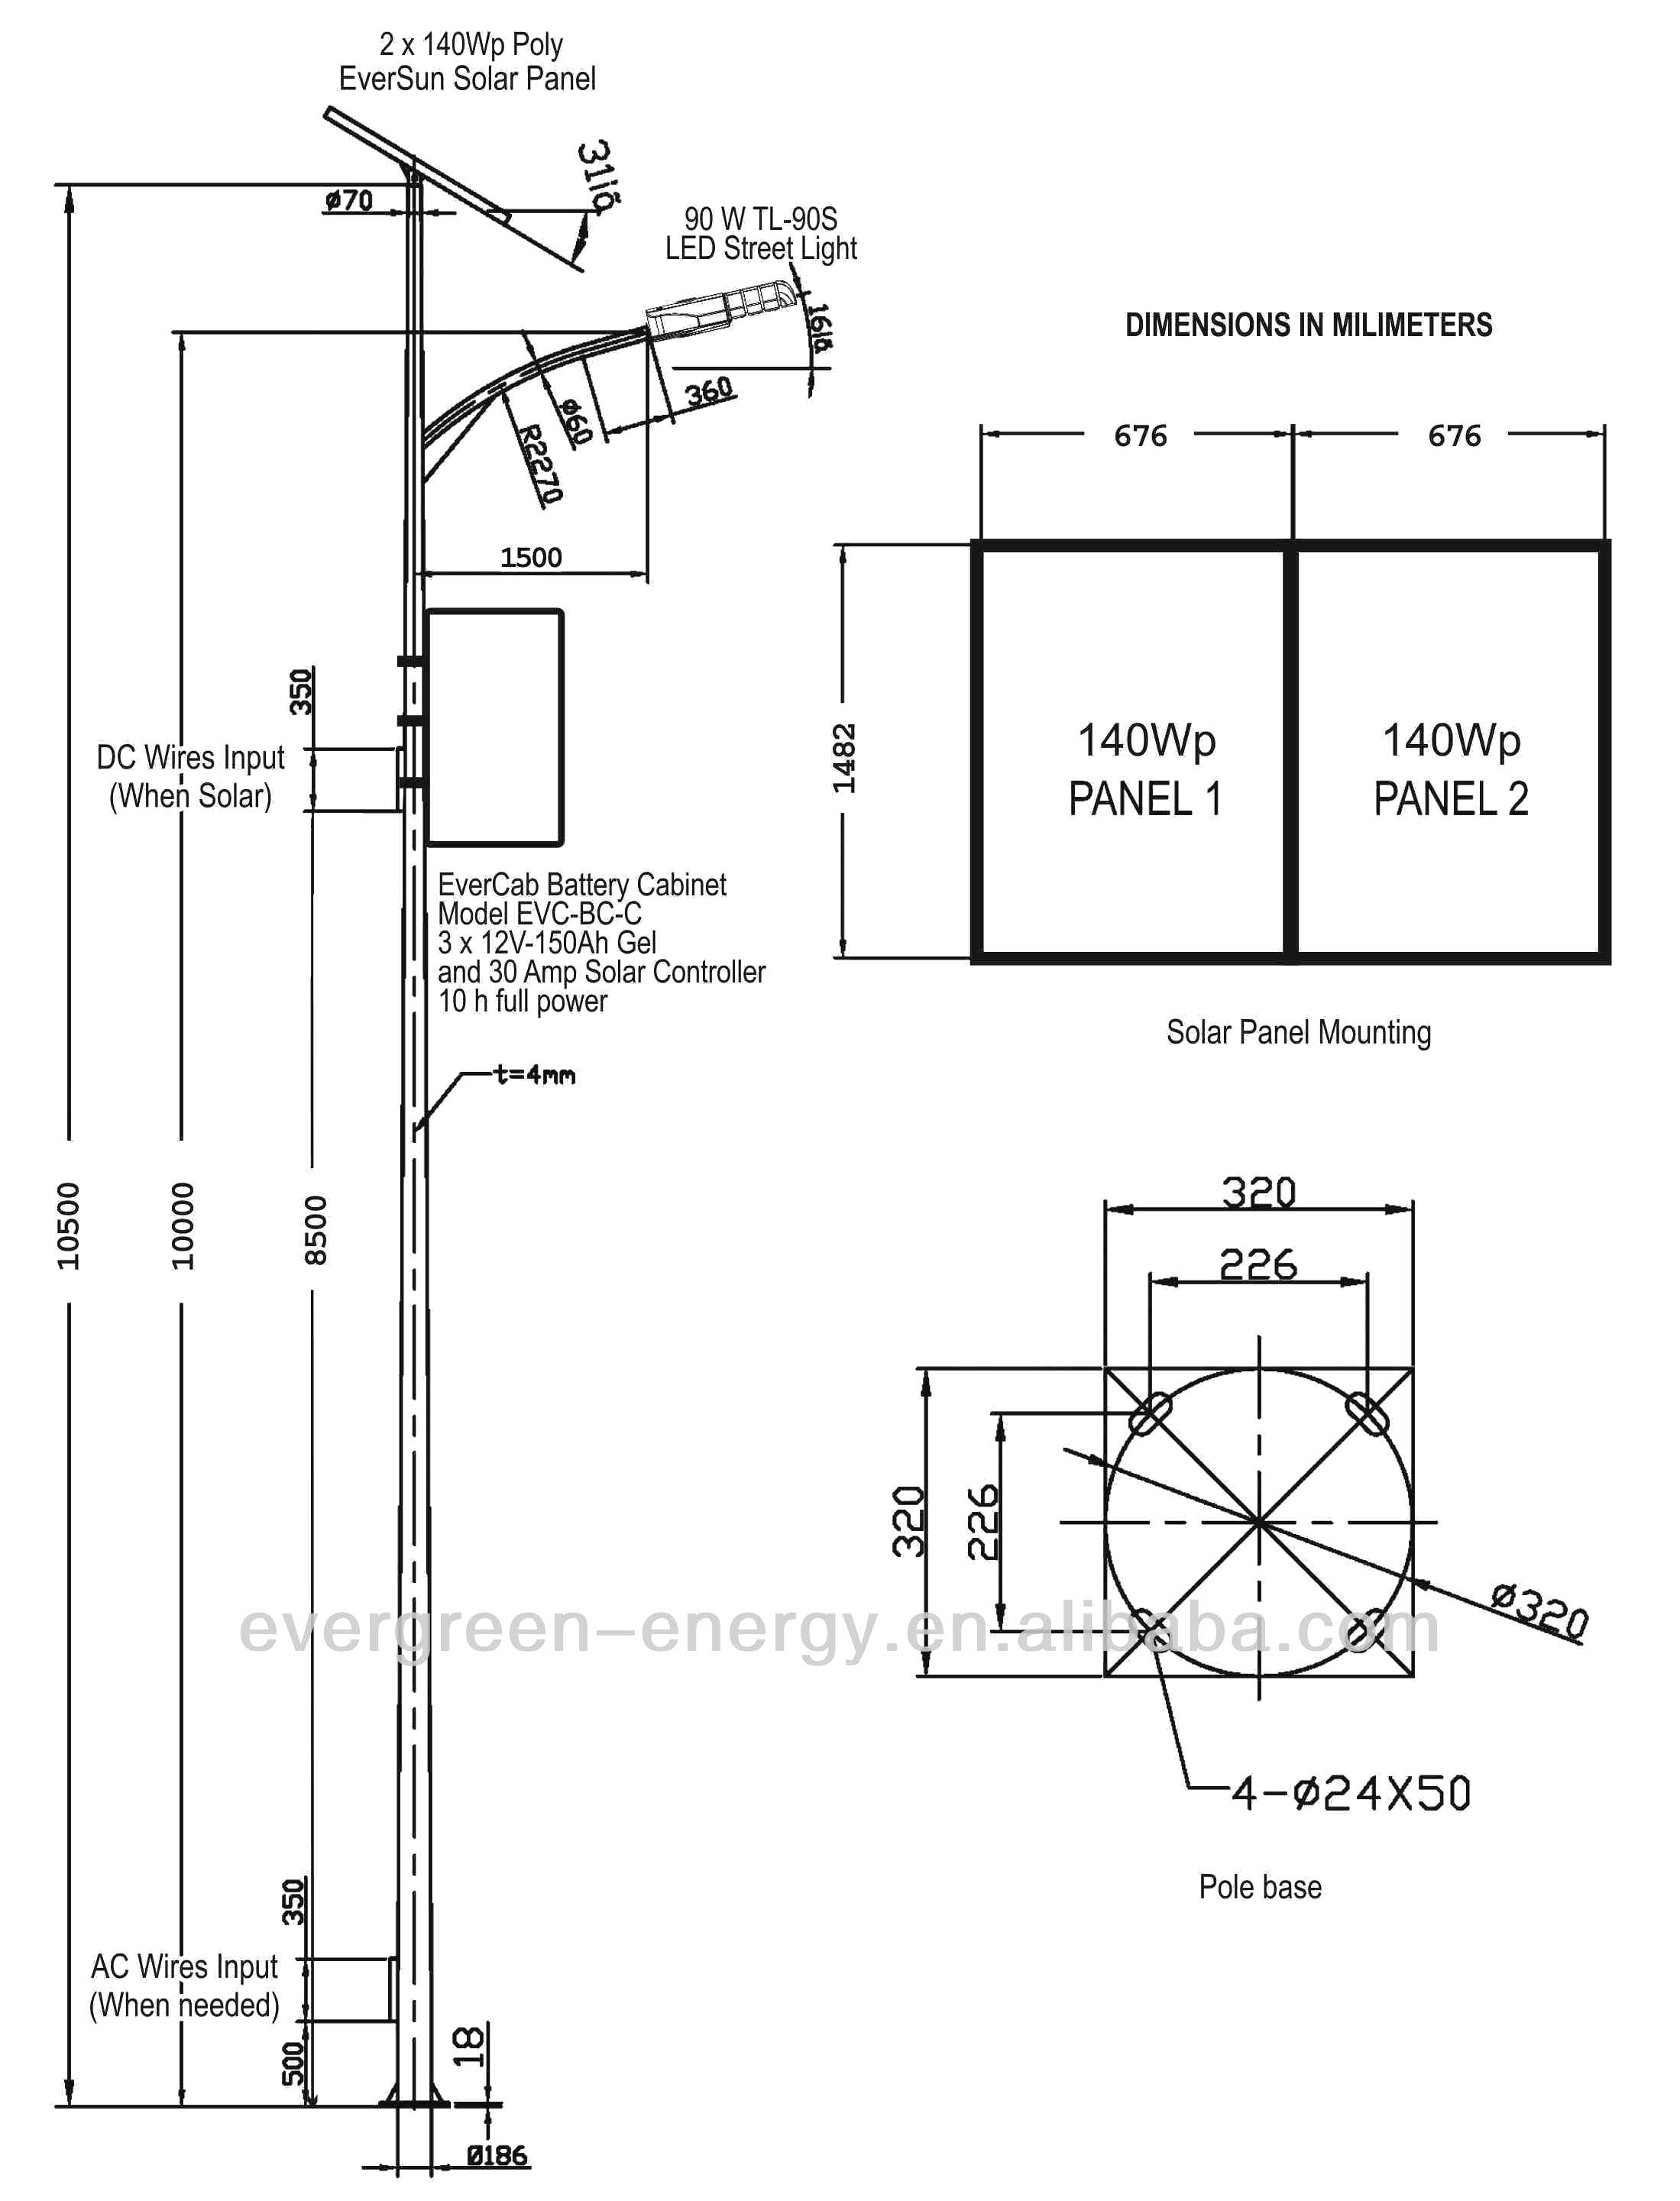 photocell installation wiring diagram riding lawn mower starter solenoid residential diions manual e booksresidential schematics u2022